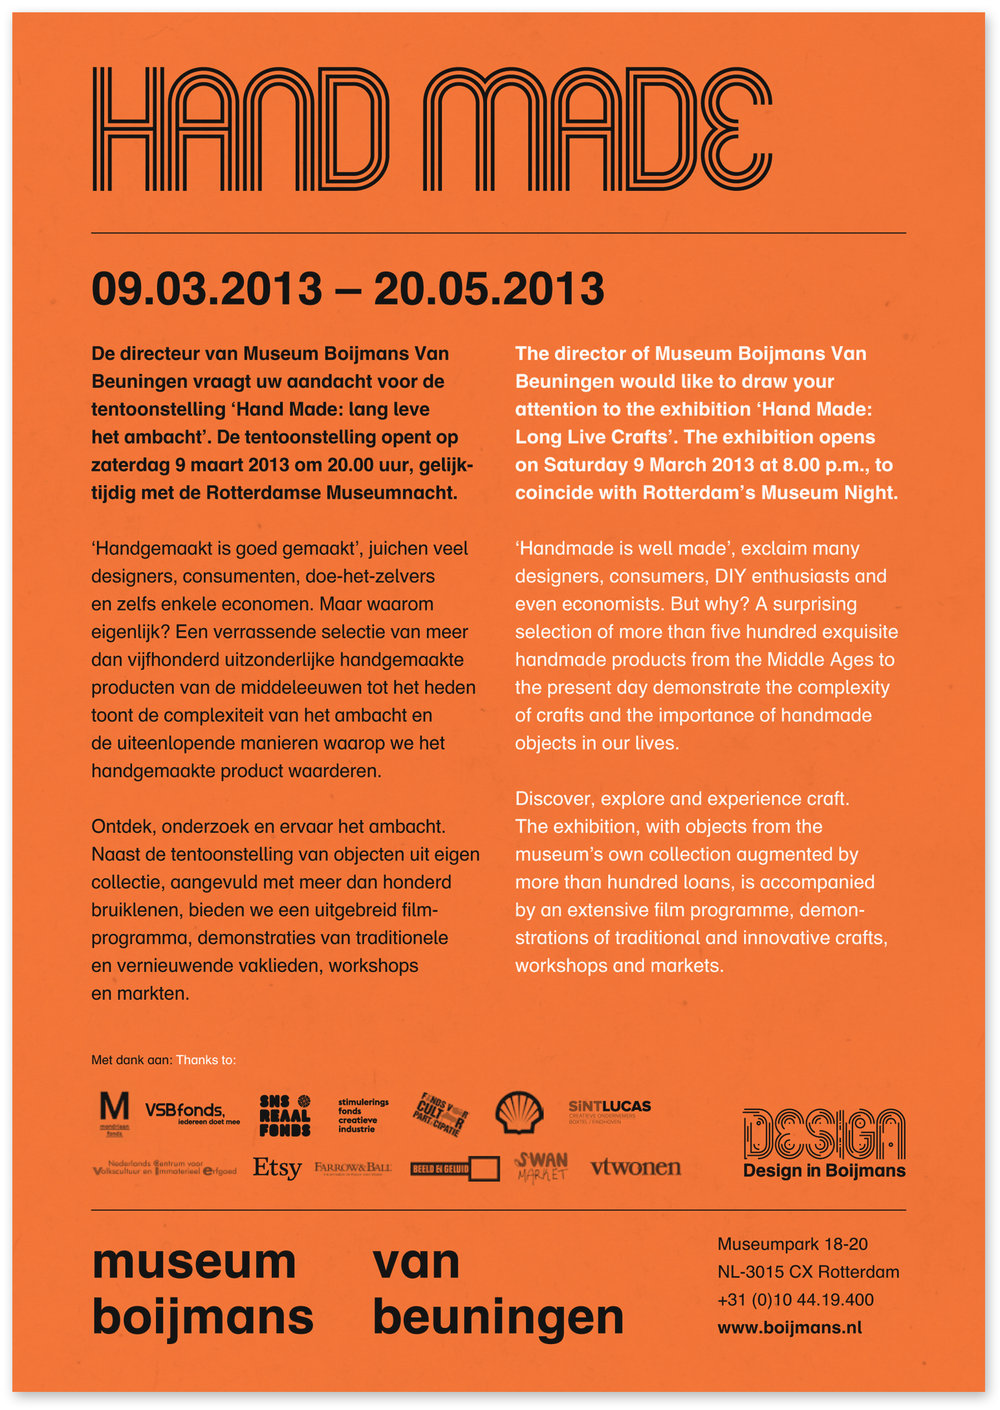 bstudio_colorado-boijmans_van_beuningen-flyer_hand_made-2